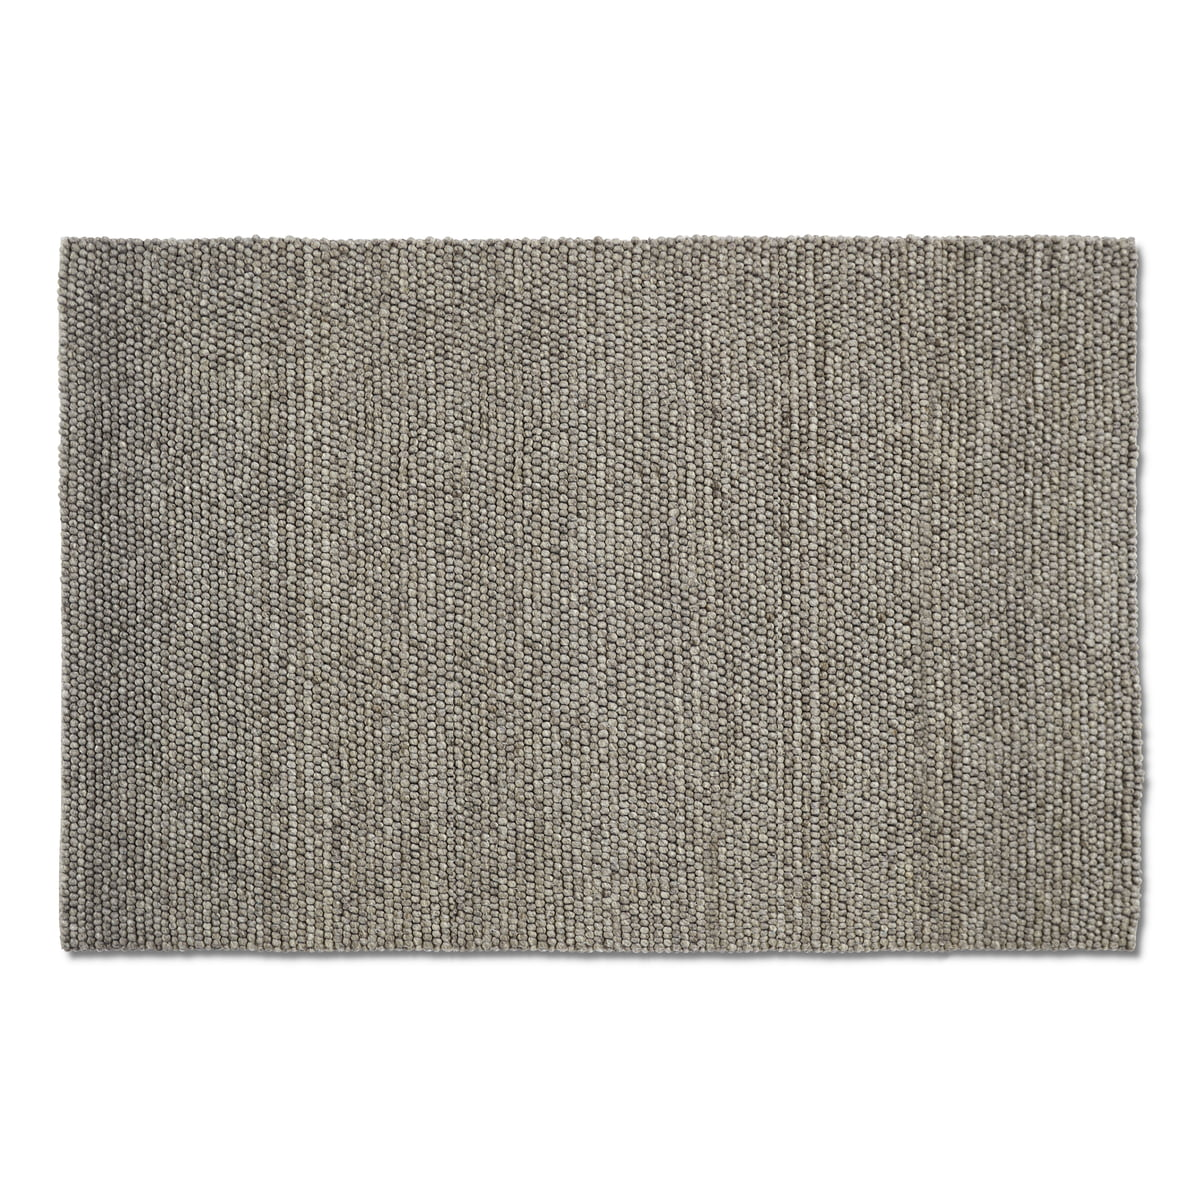 Hay   Peas Rug 200 X 300 Cm, Medium Grey